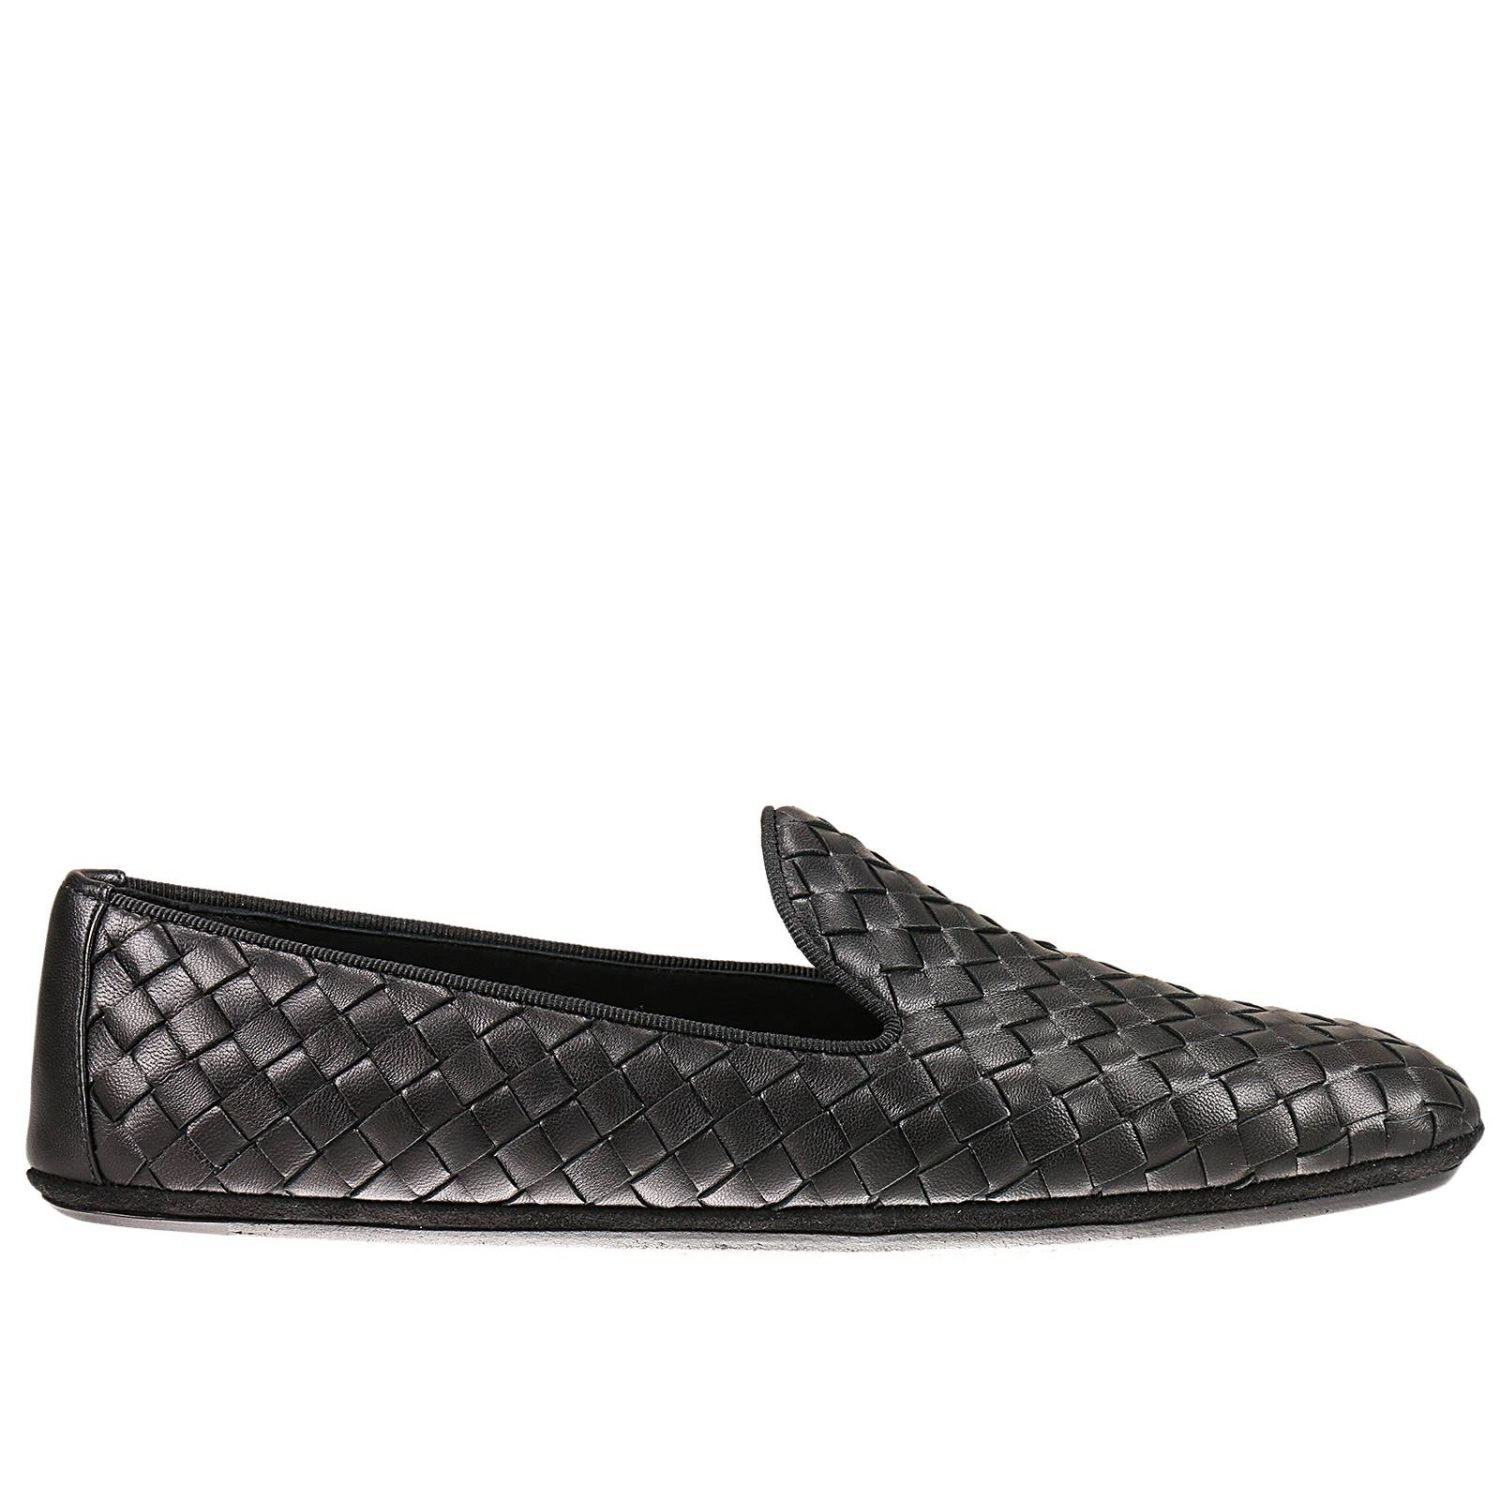 Ballet Flats Shoes Woman Bottega Veneta